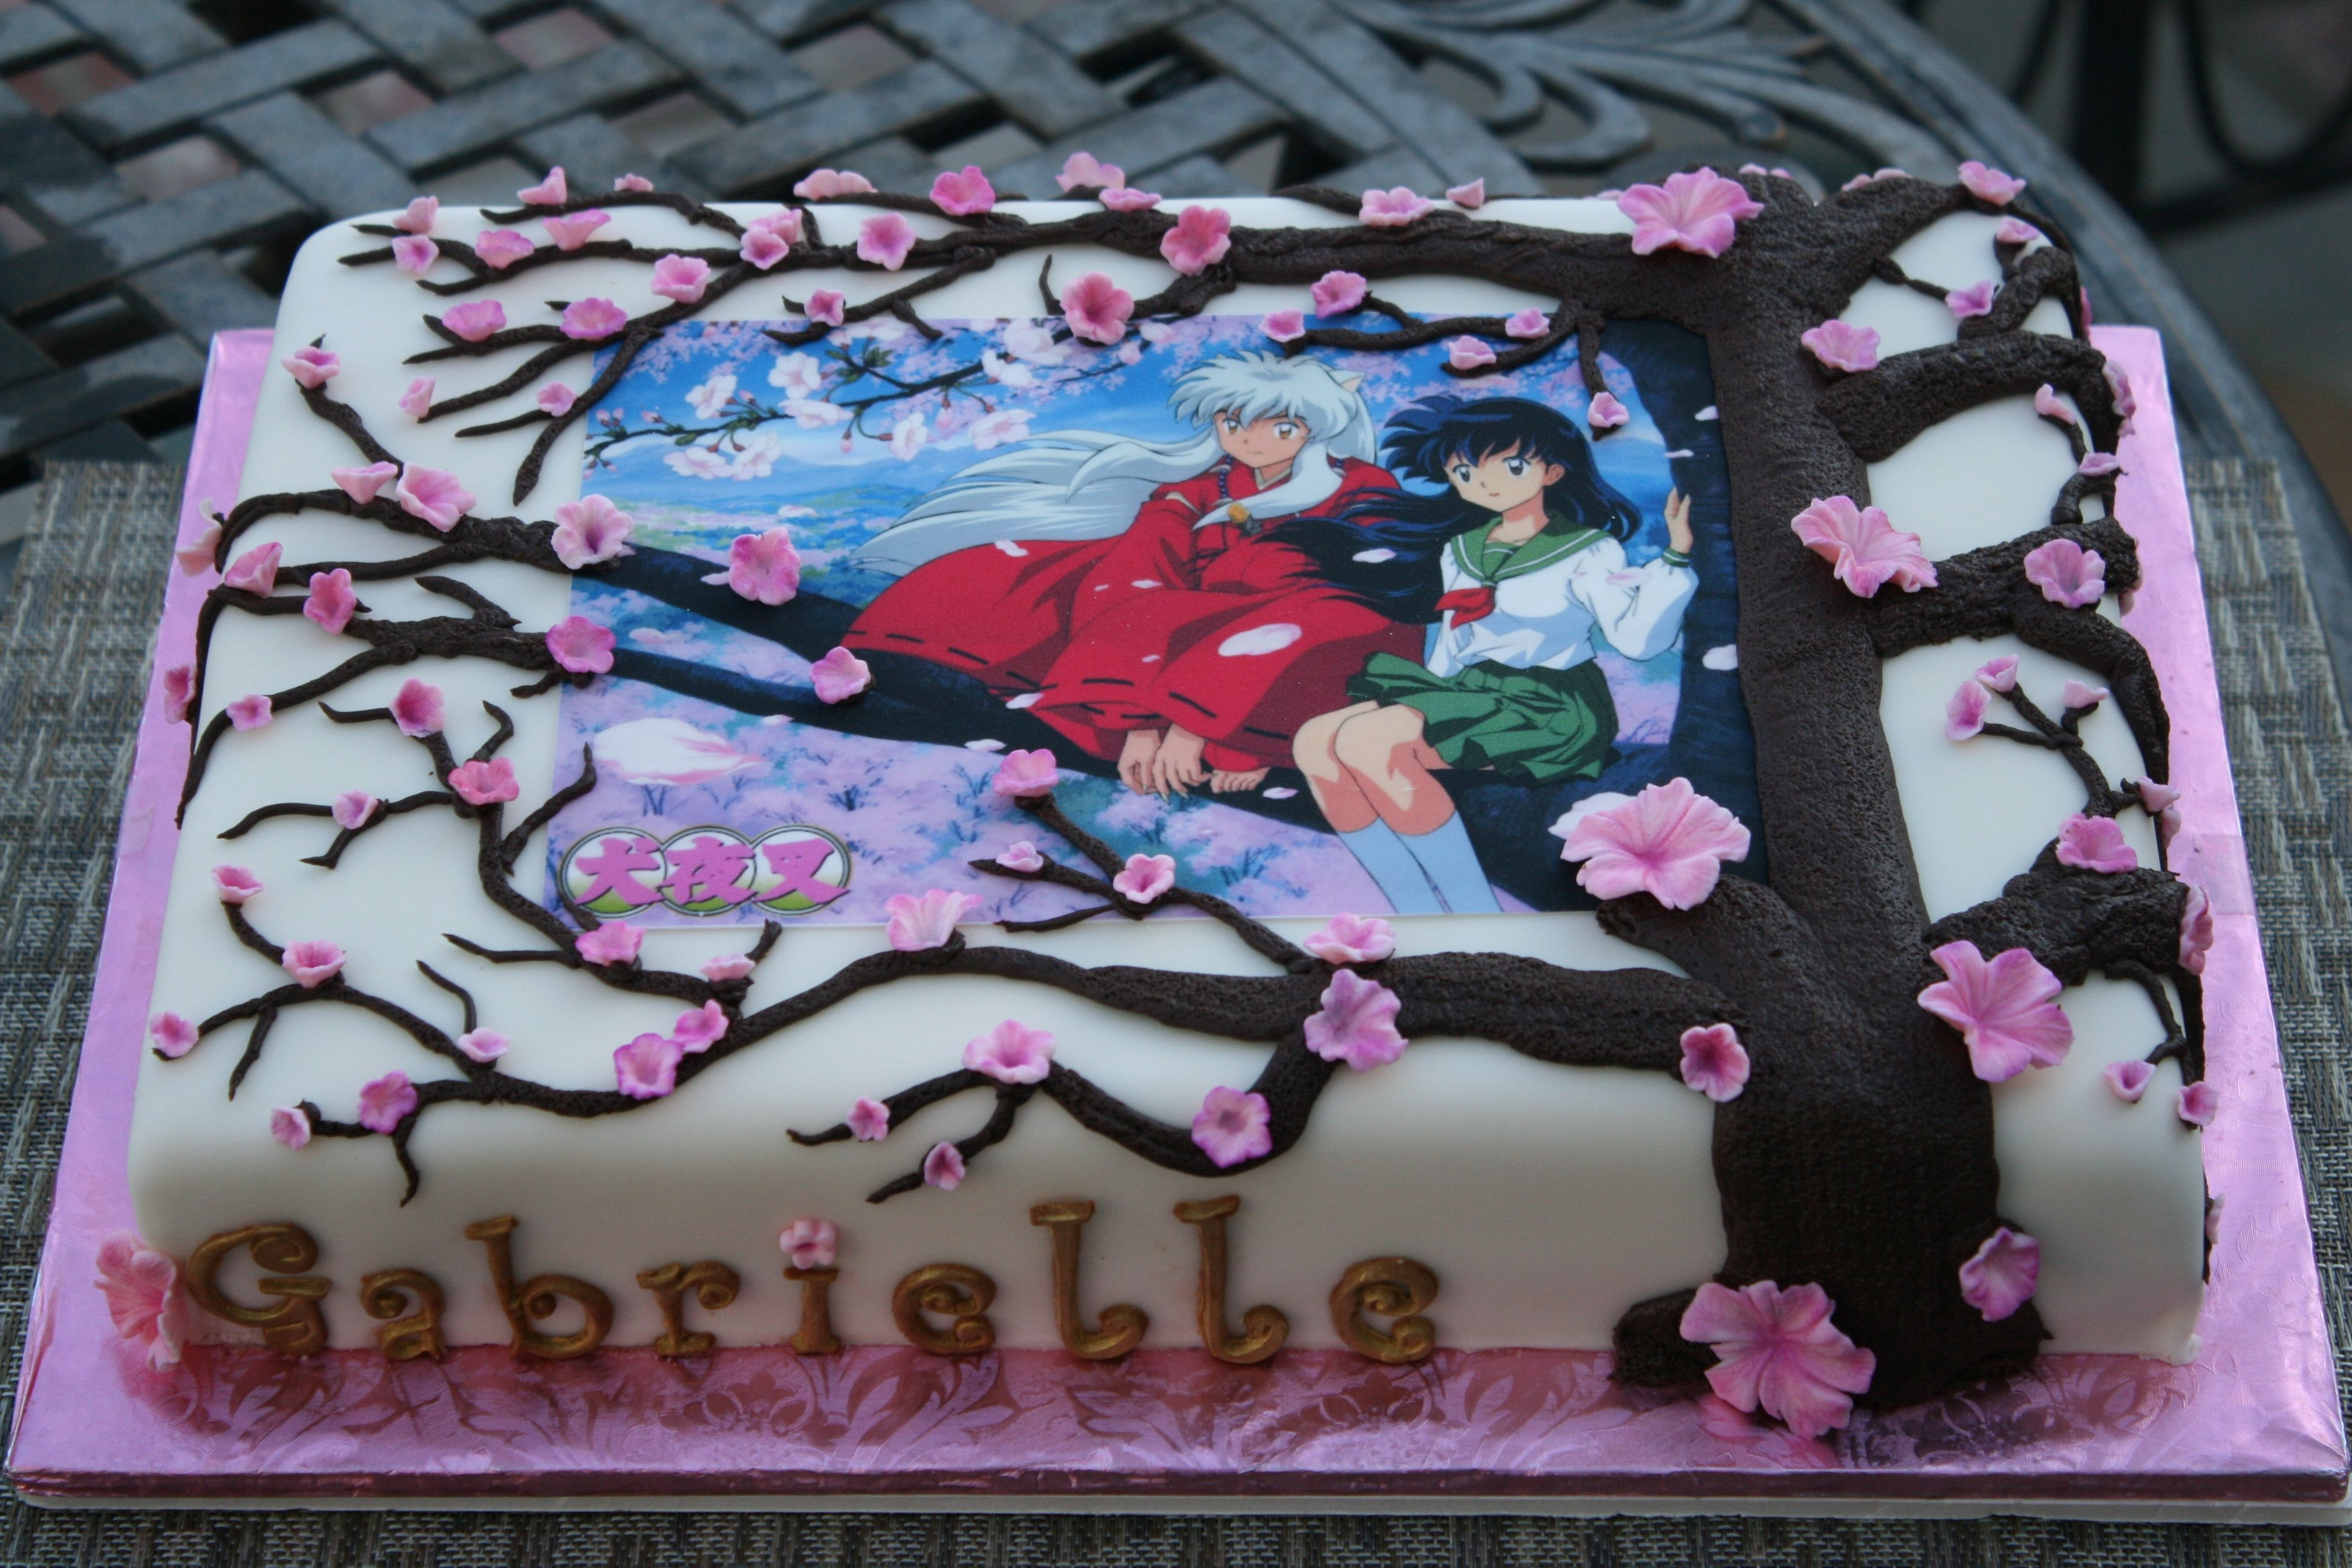 Inuyasha Japanese Anime Cake Chocolate Cake With Cherry Filling